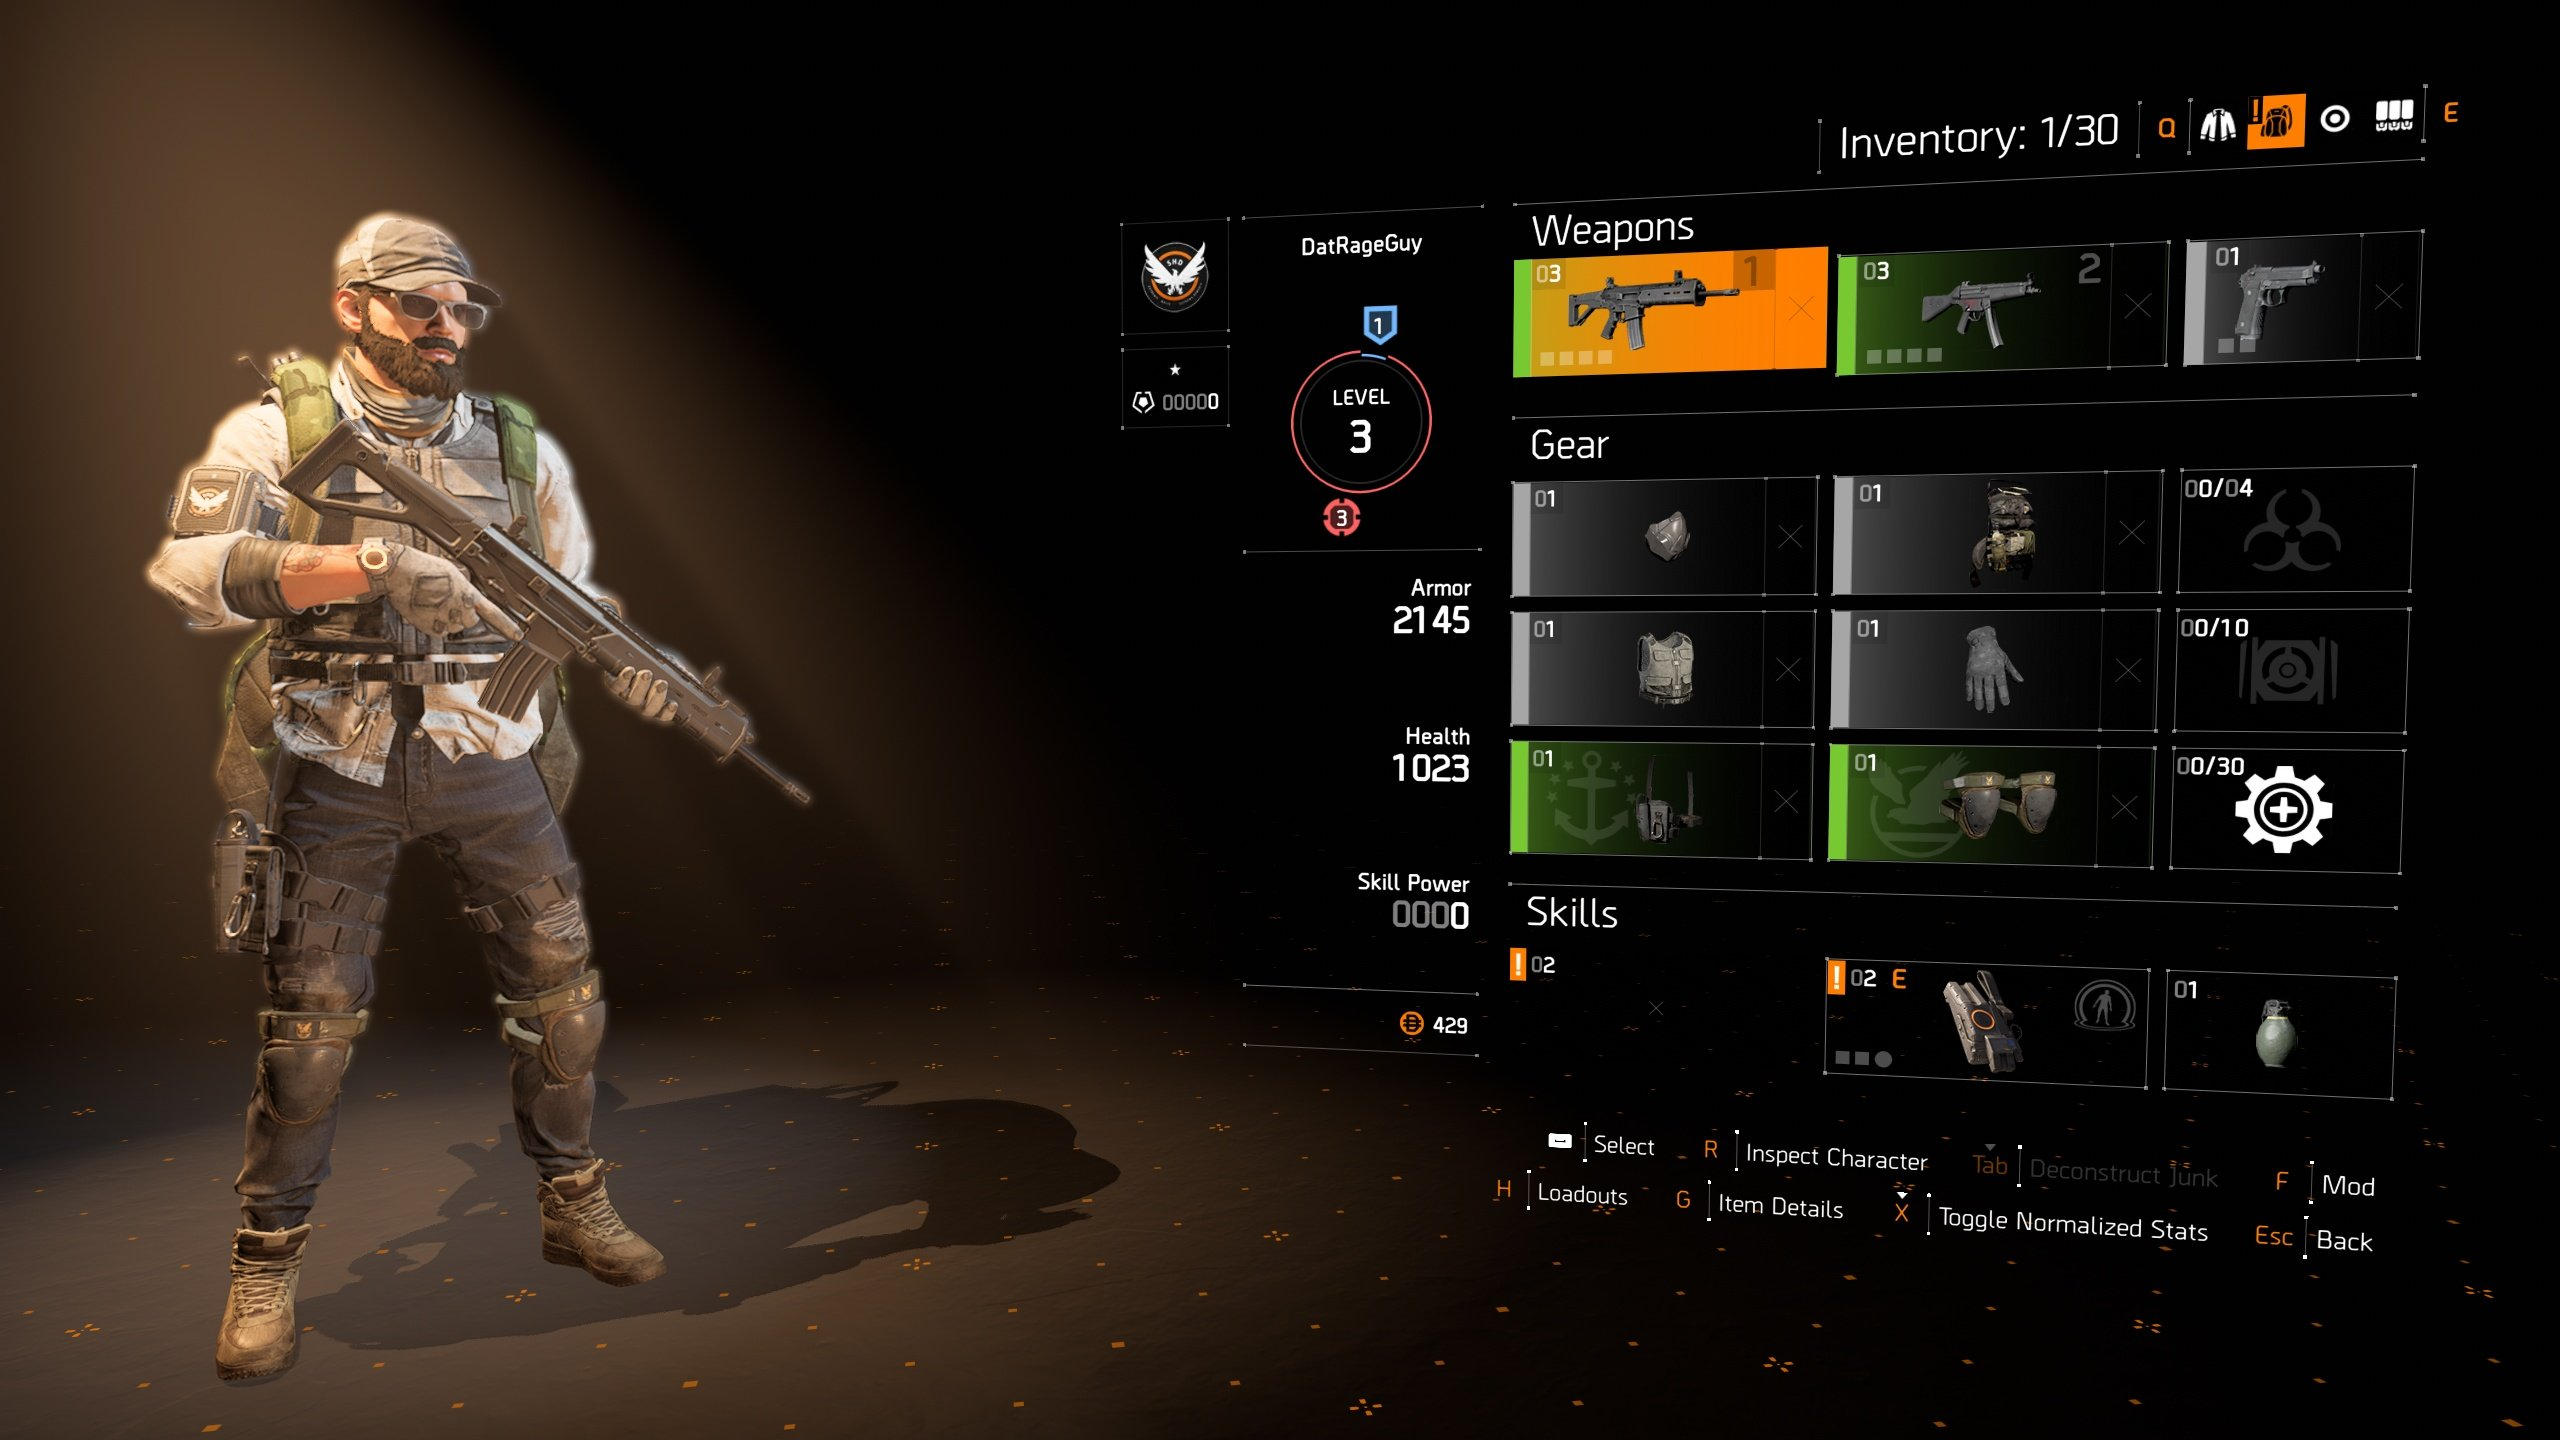 how to change clothes in The Division 2 - inventory management screen